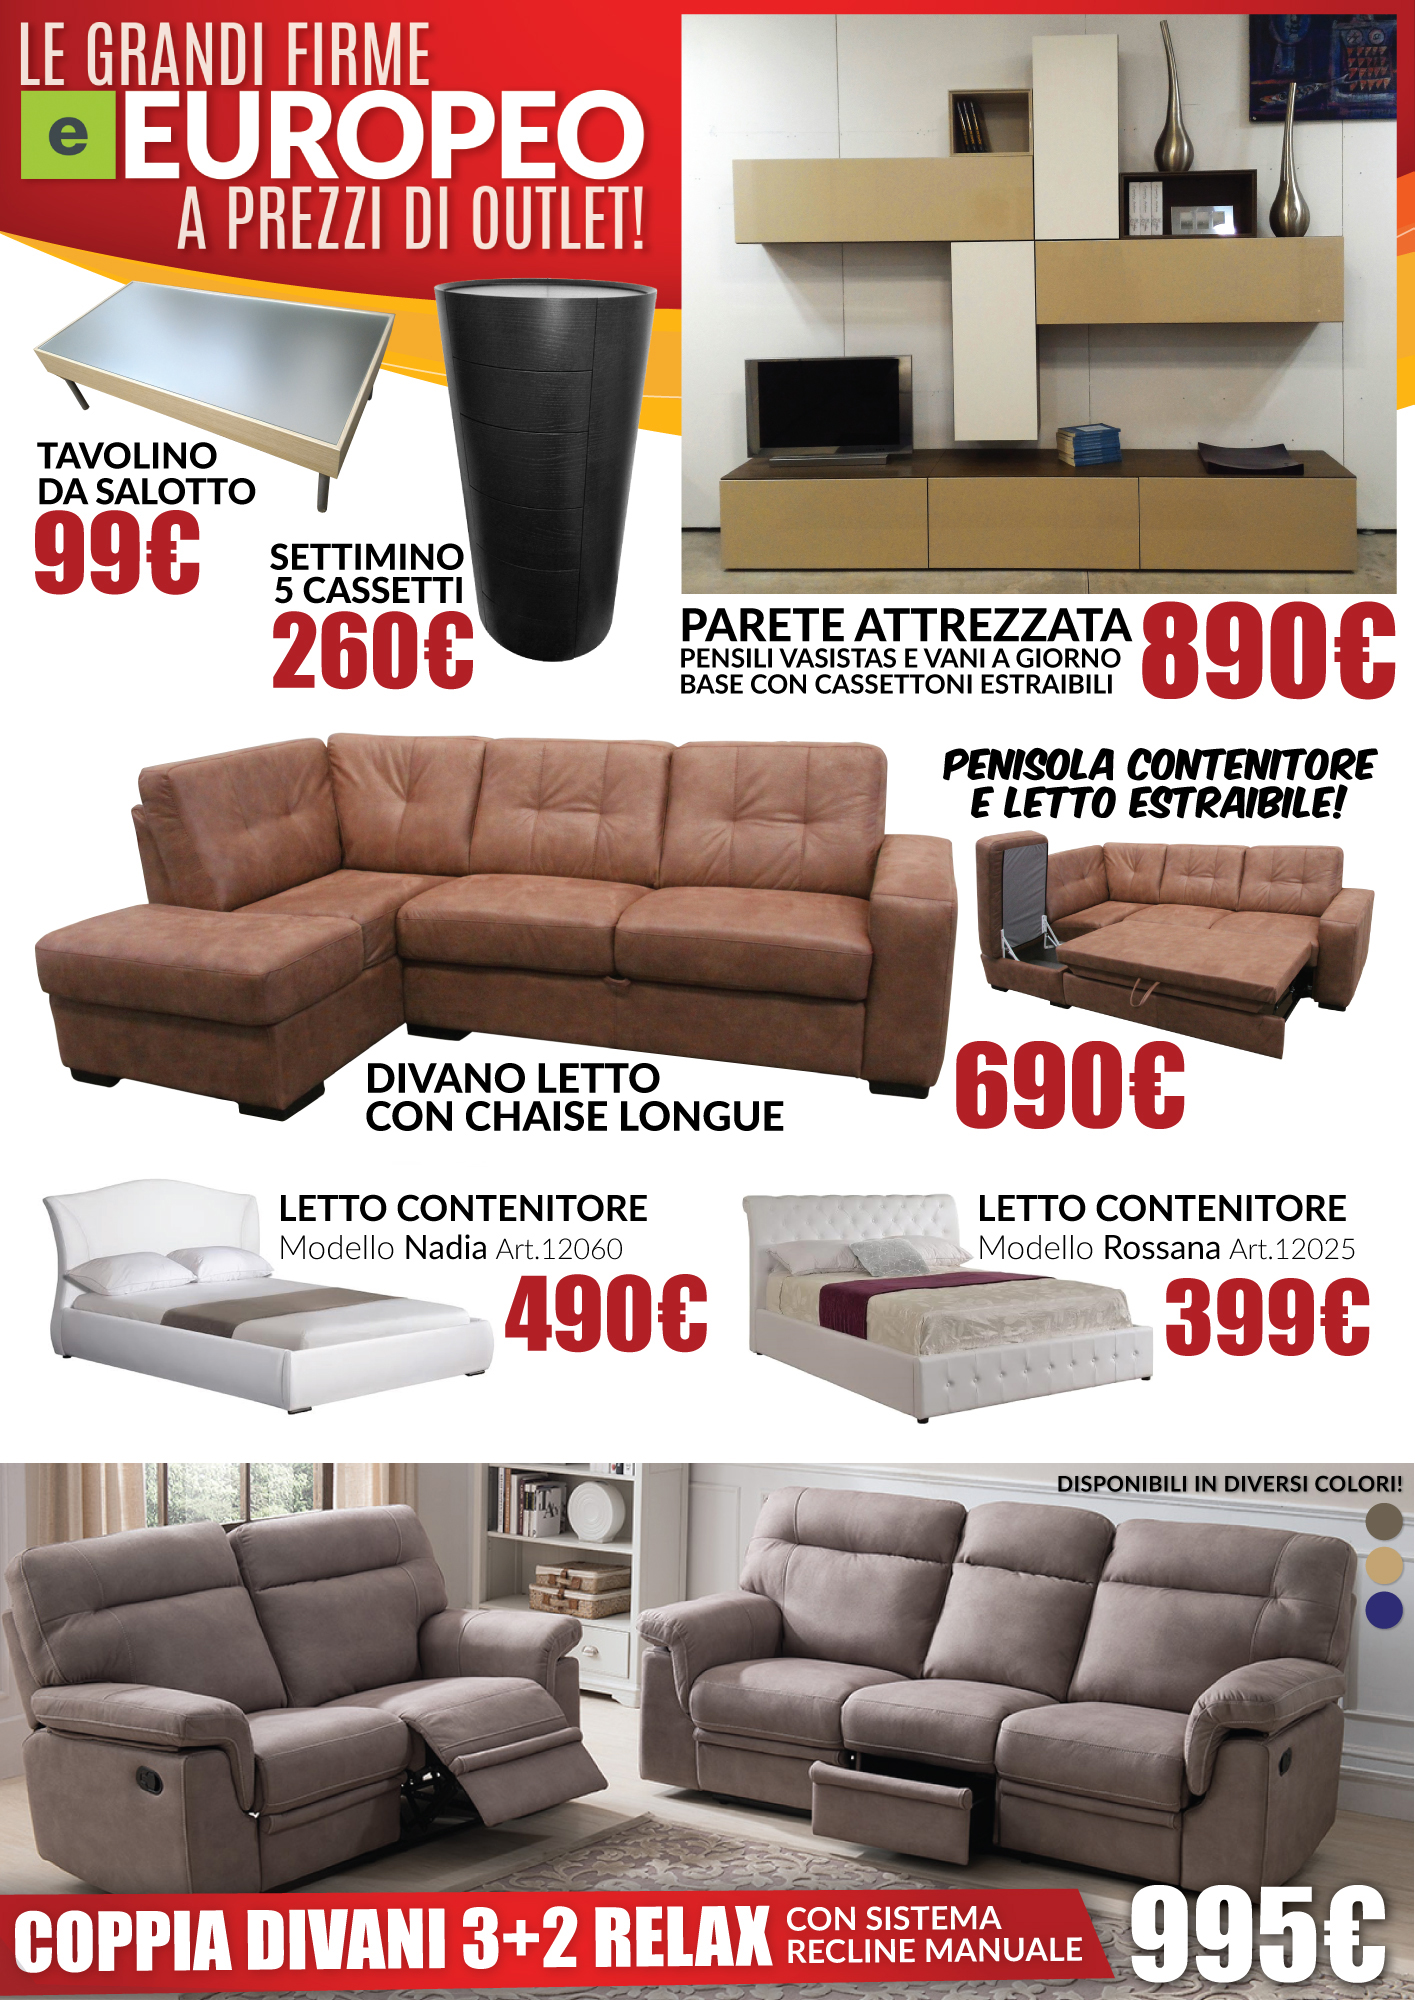 NUOVO VOLANTINO OUTLET - Dolce Casa Outlet